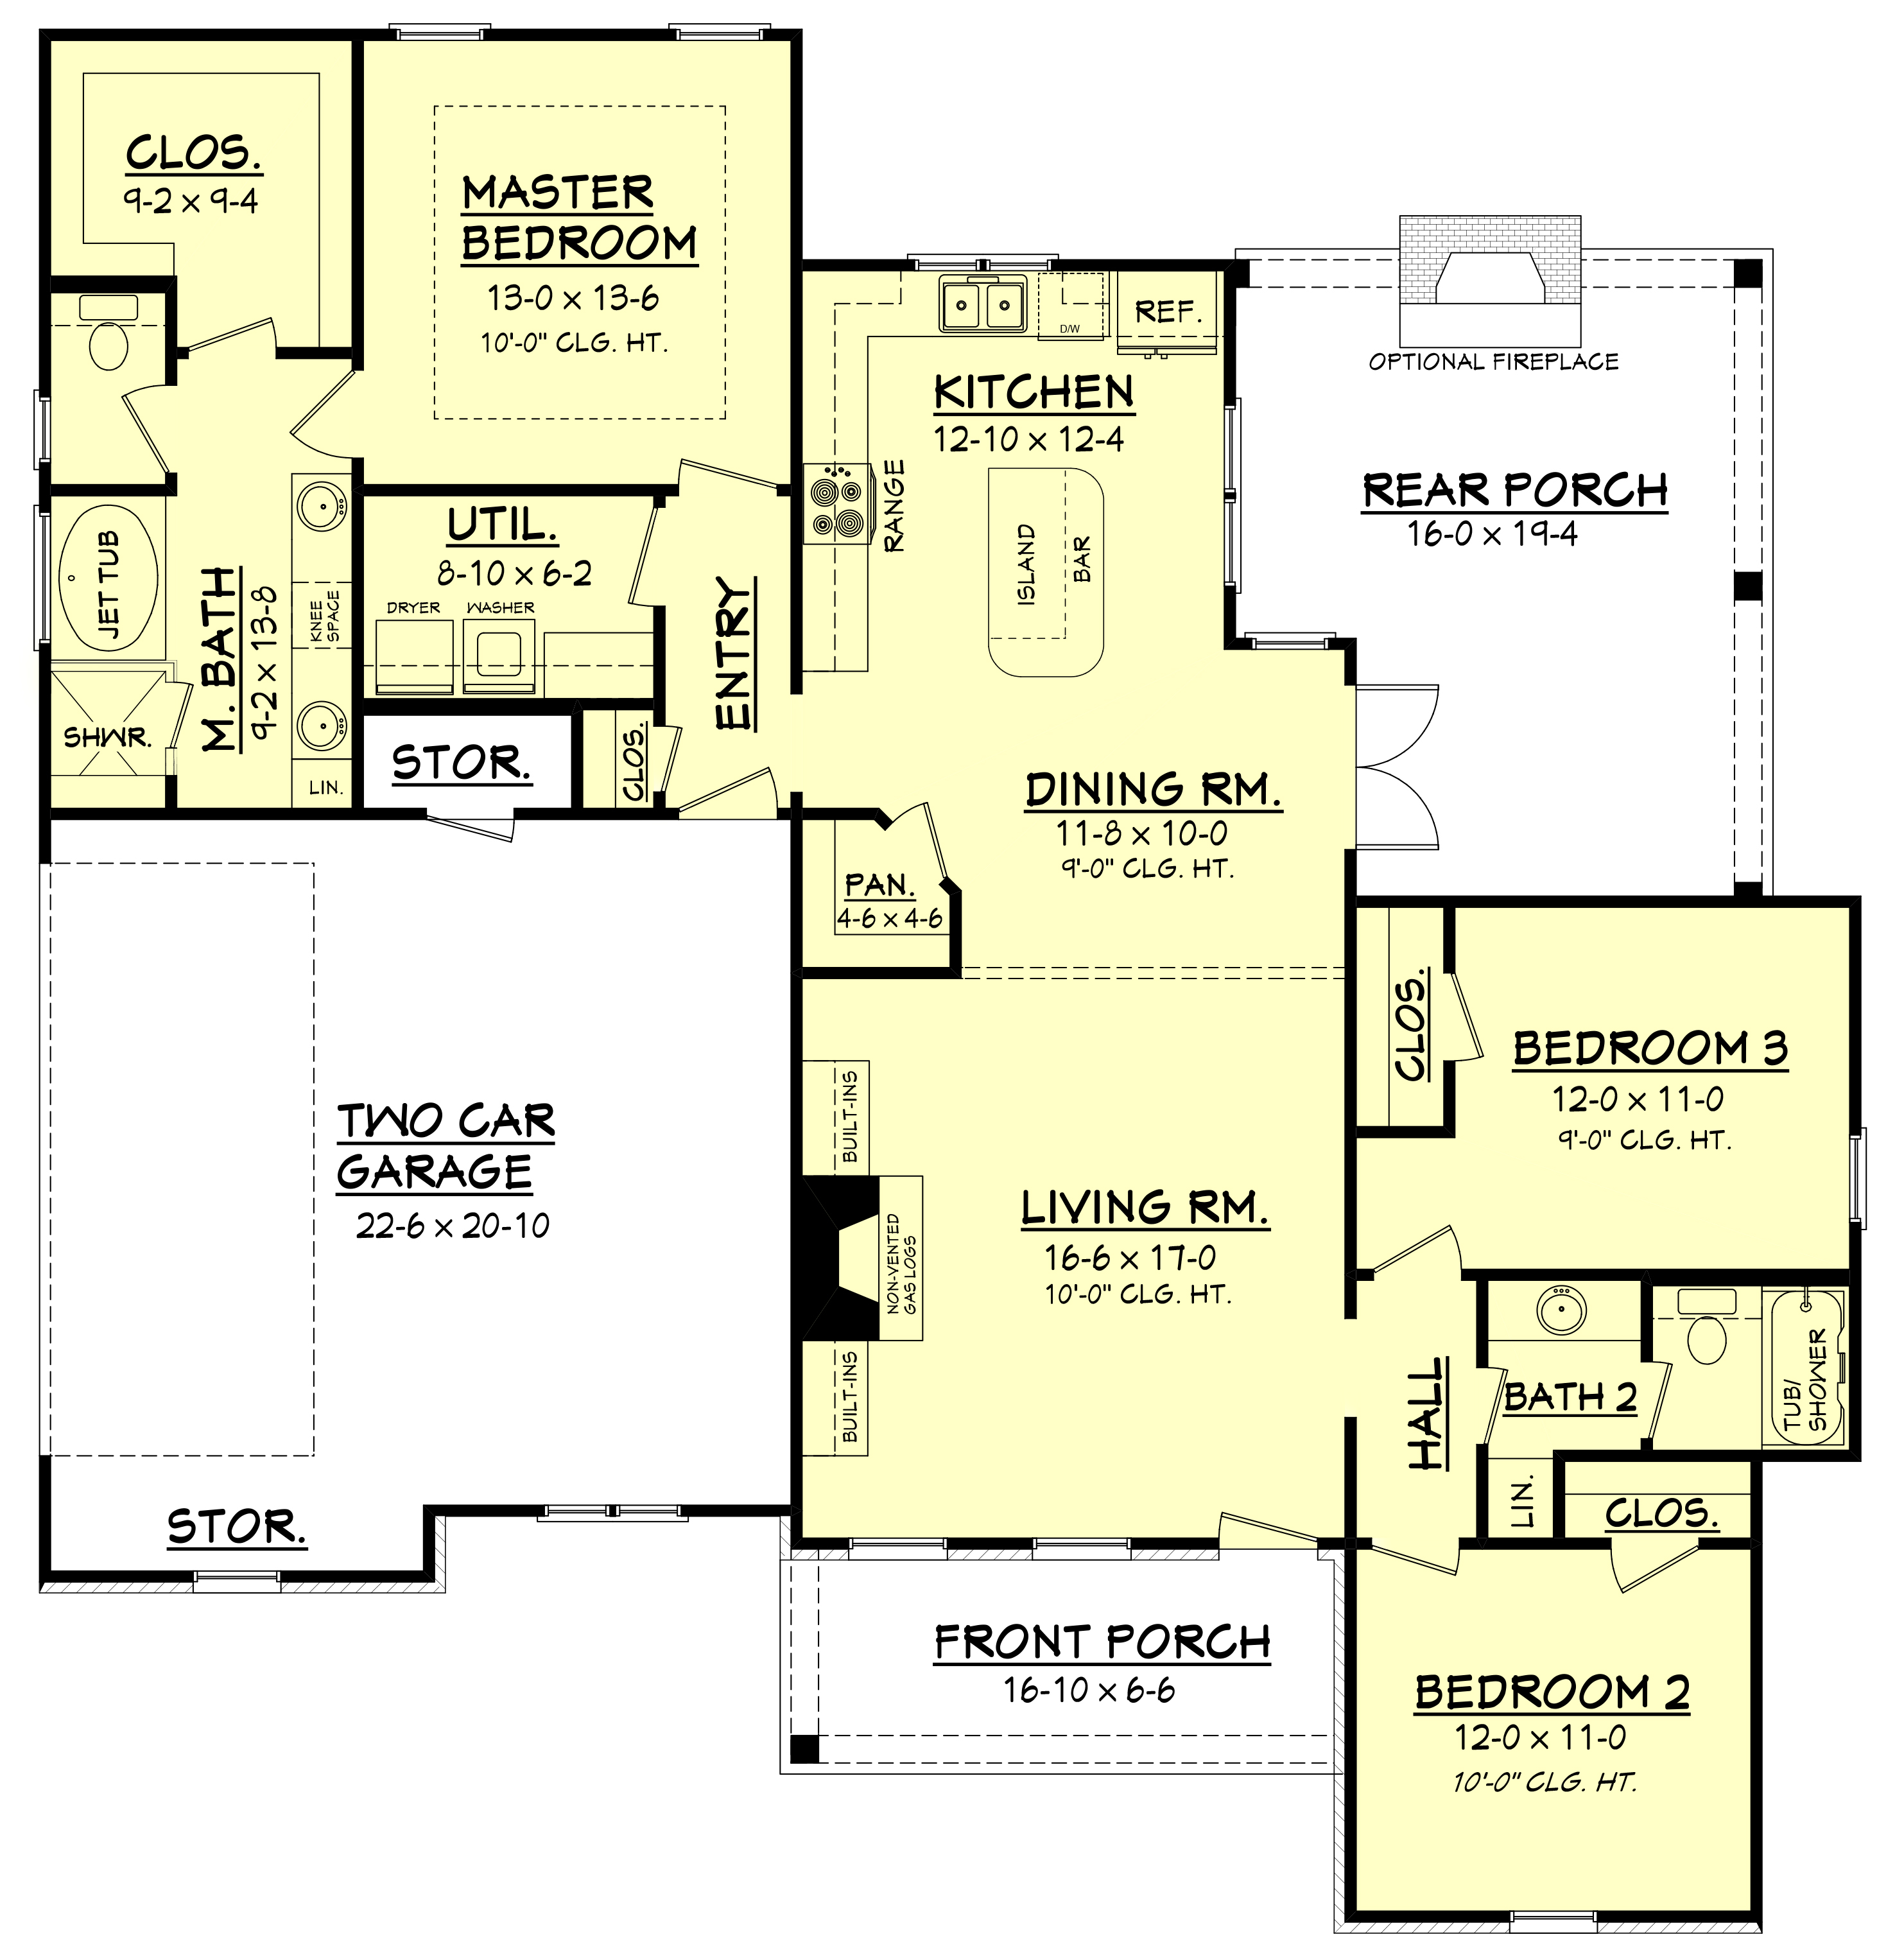 Floor Planning Tools In Asic: Craftsman House Plan #142-1144: 3 Bedrm, 1600 Sq Ft Home